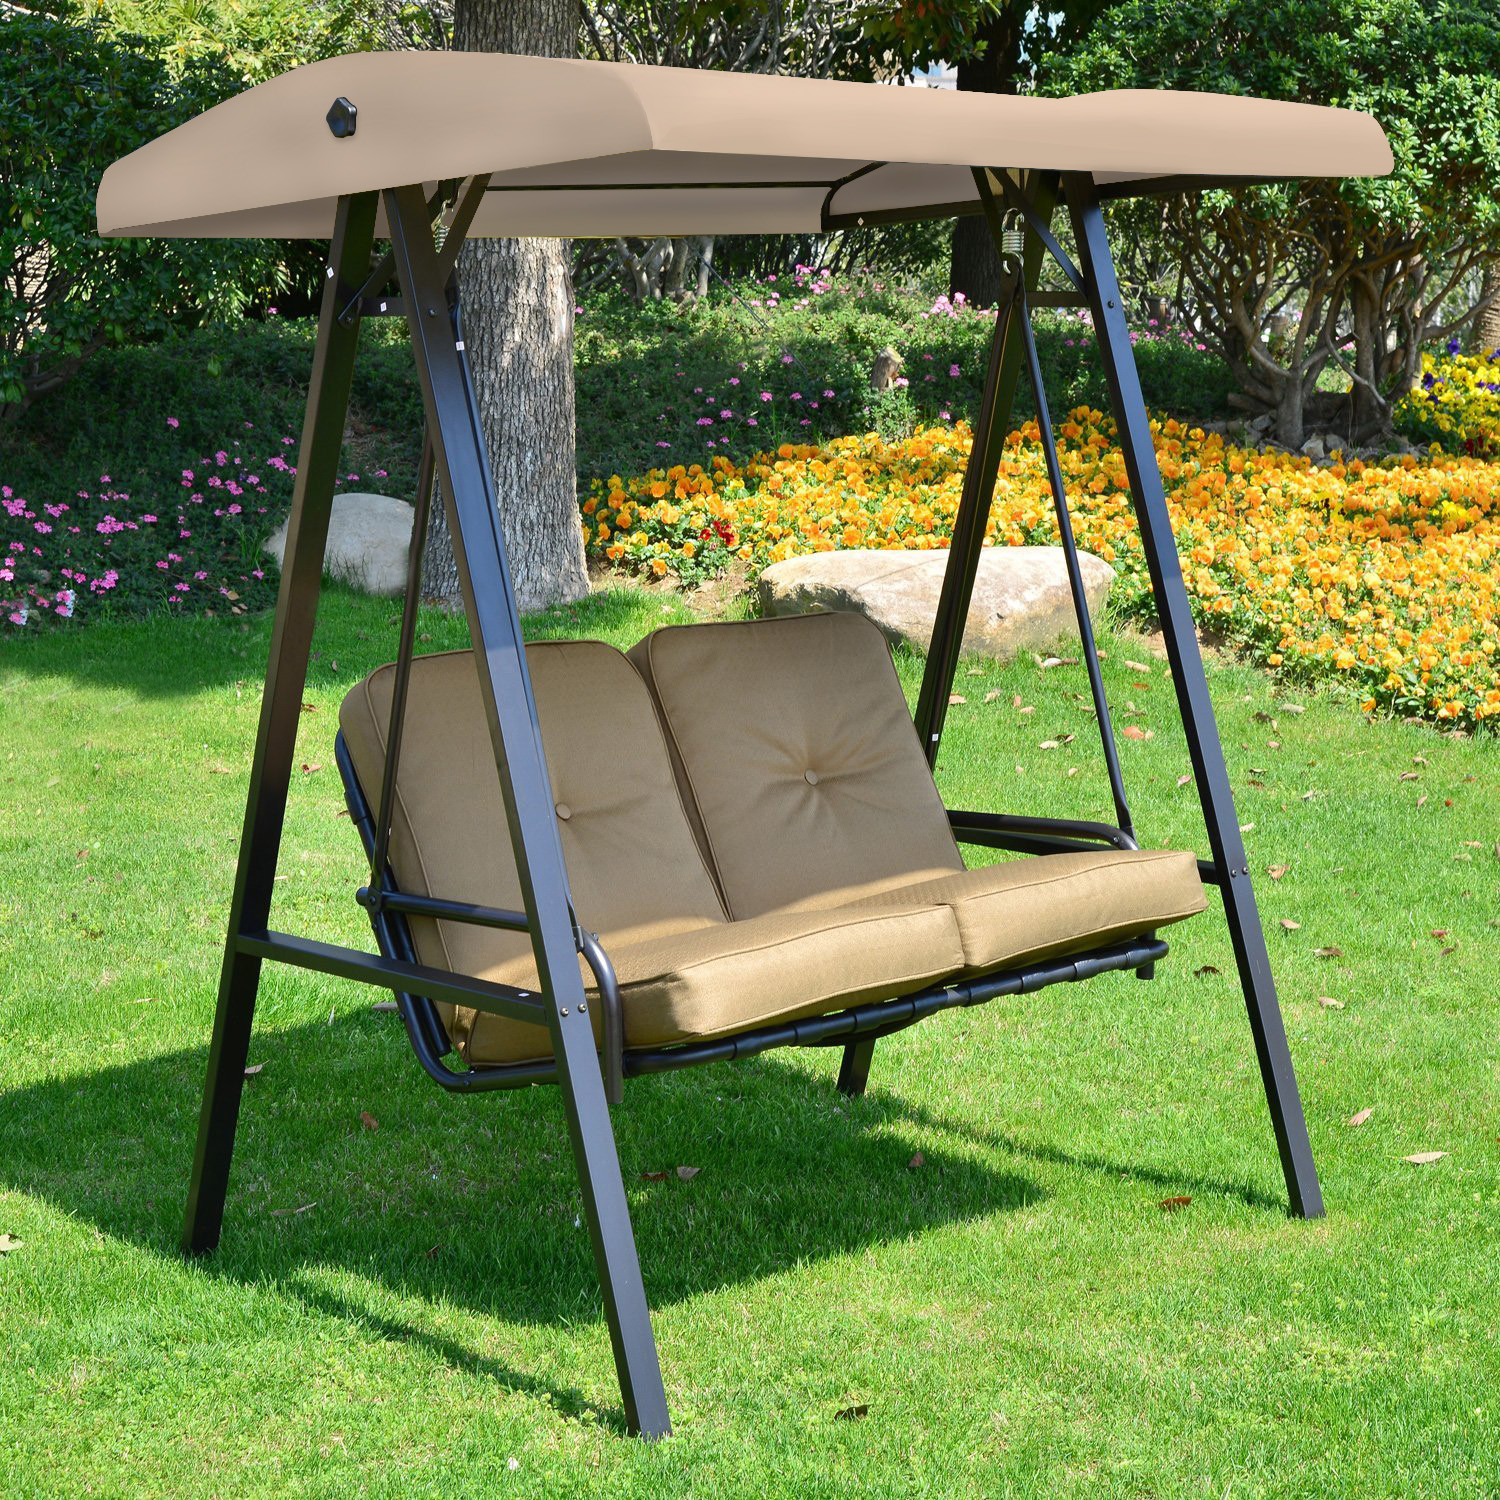 Outdoor Patio Backyard Garden Free Standing 3 Person Porch Swing Hammock Bench Adjustable Canopy Loveseat Convertible Bed 3 Comfortable Seat Durable Black Steel Frame Beige Cushioned Fabric Porch Swings